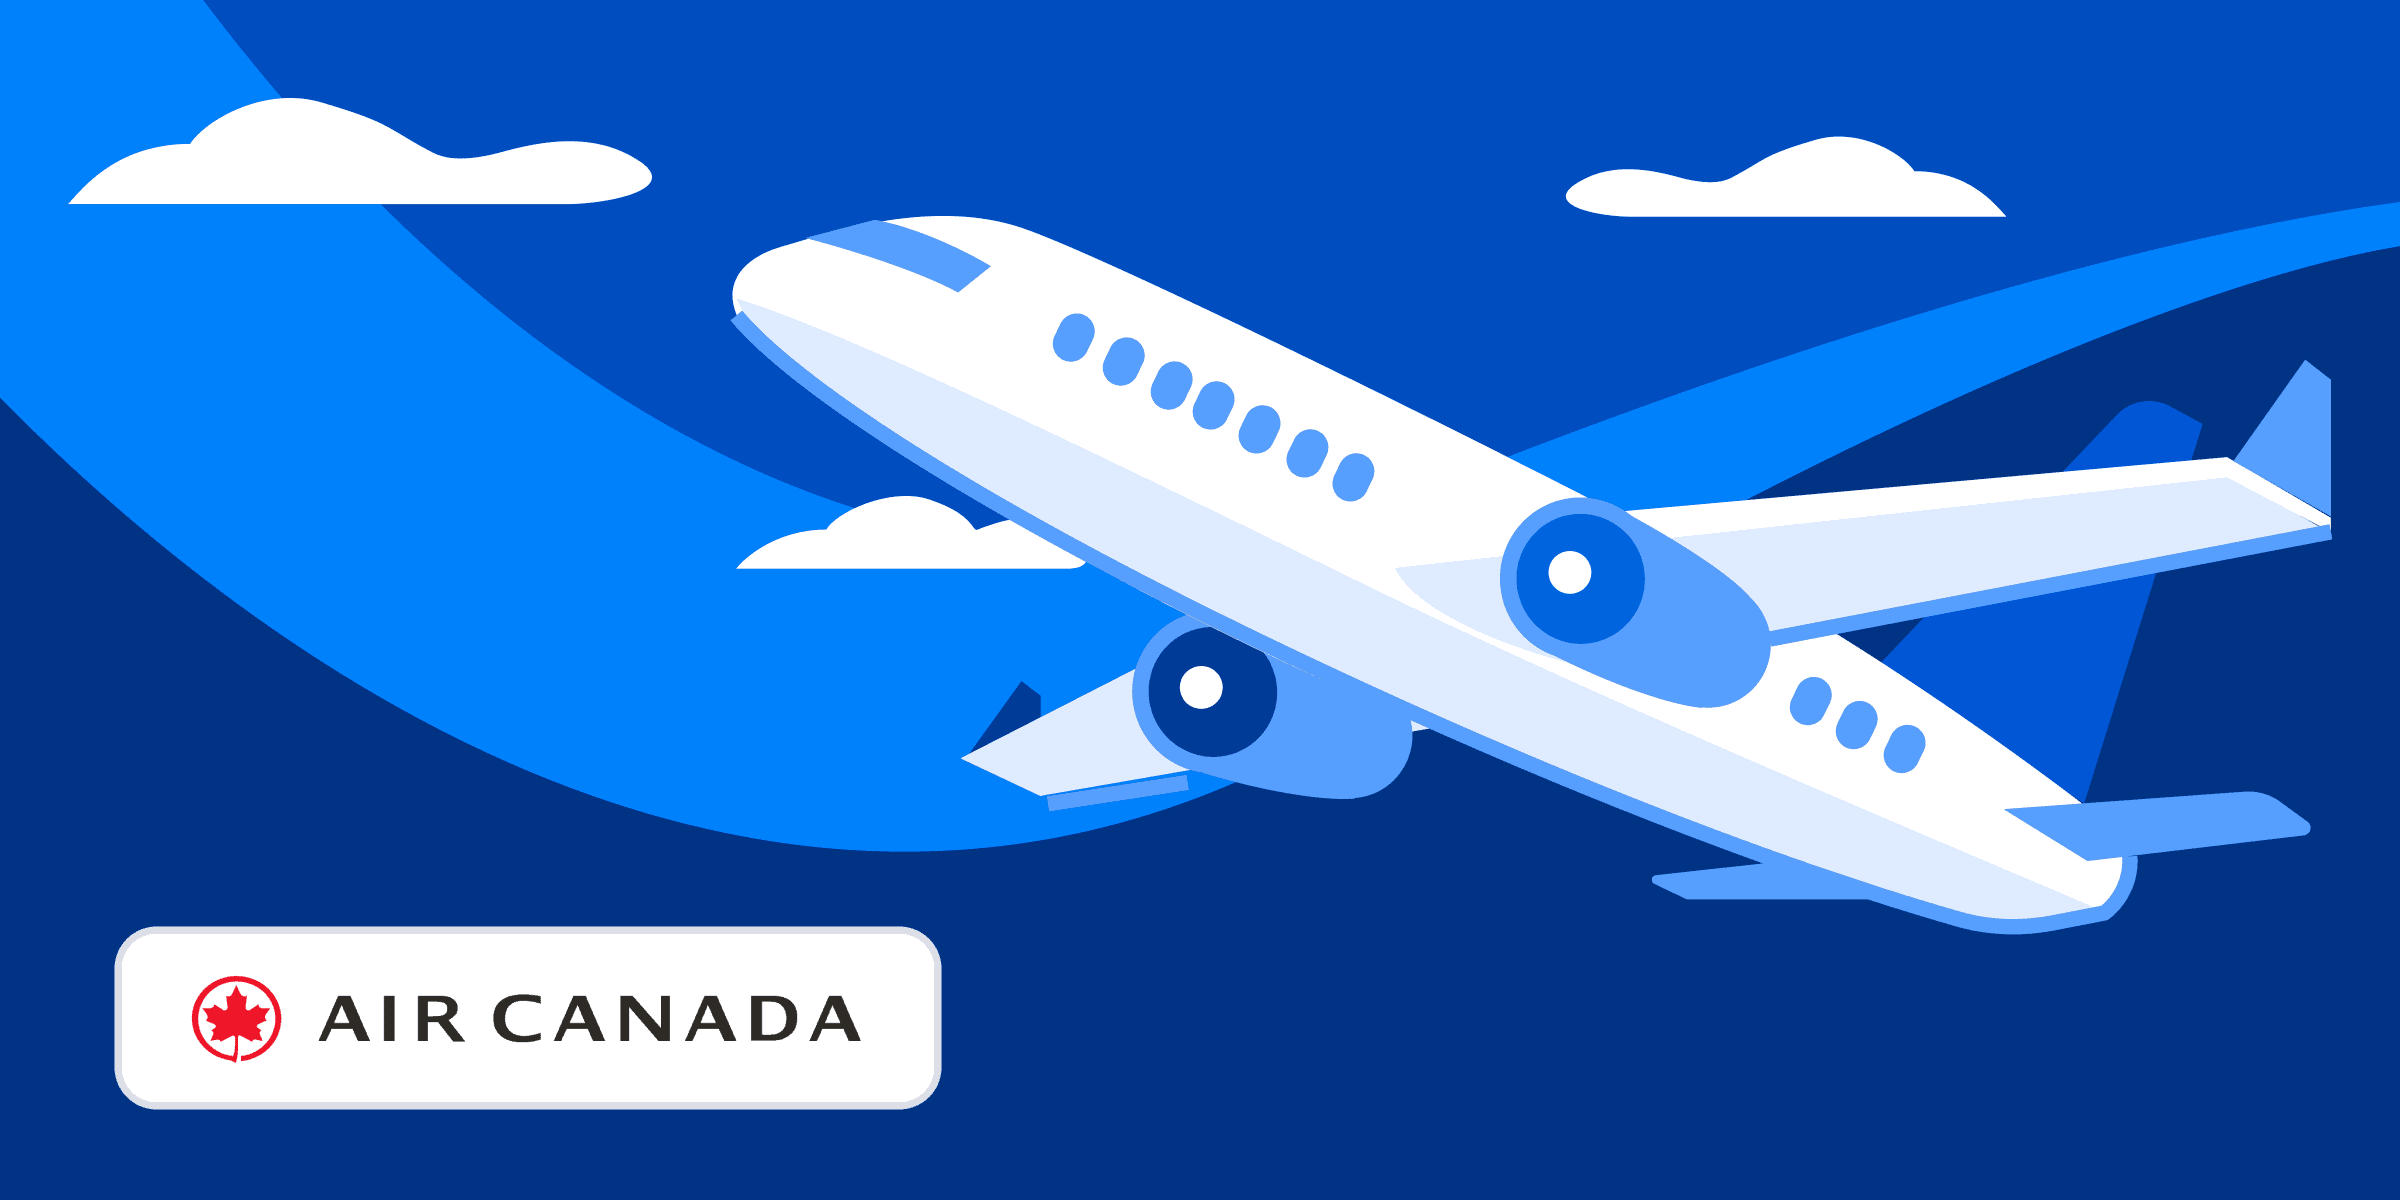 Plane flying with Air Canada logo at bottom of image